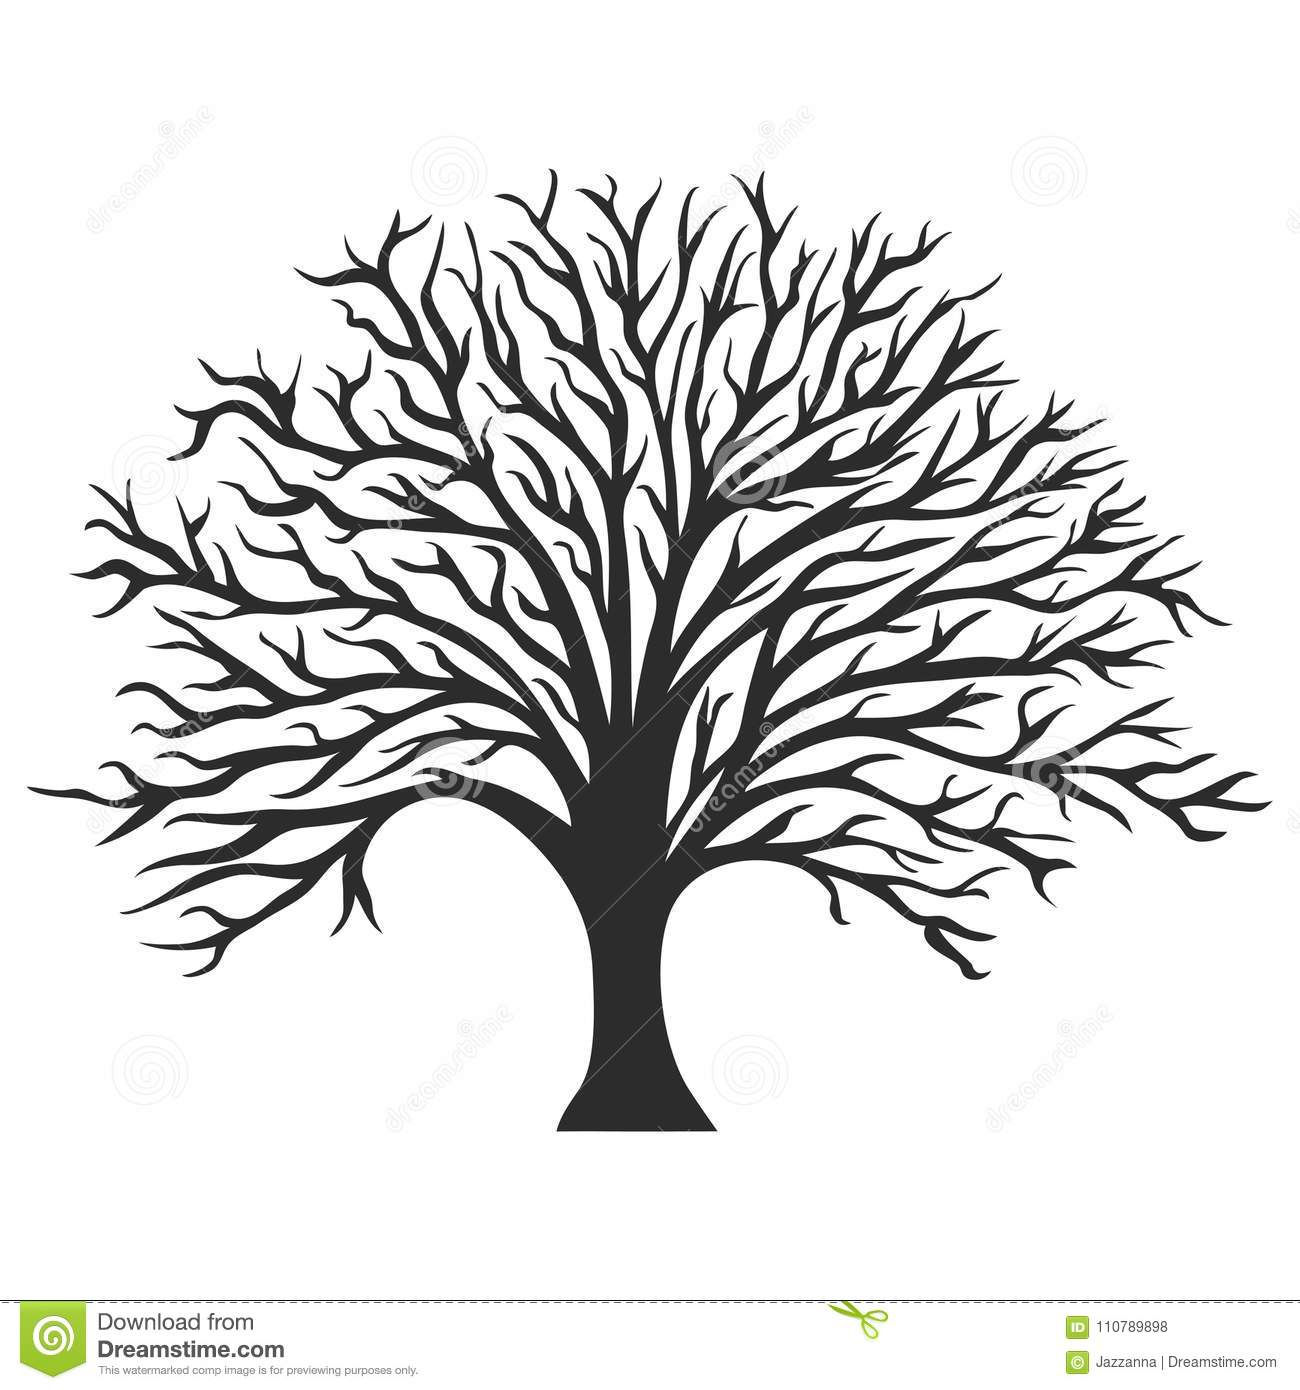 Object Oak Tree Silhouette Stock Vector Illustration Of